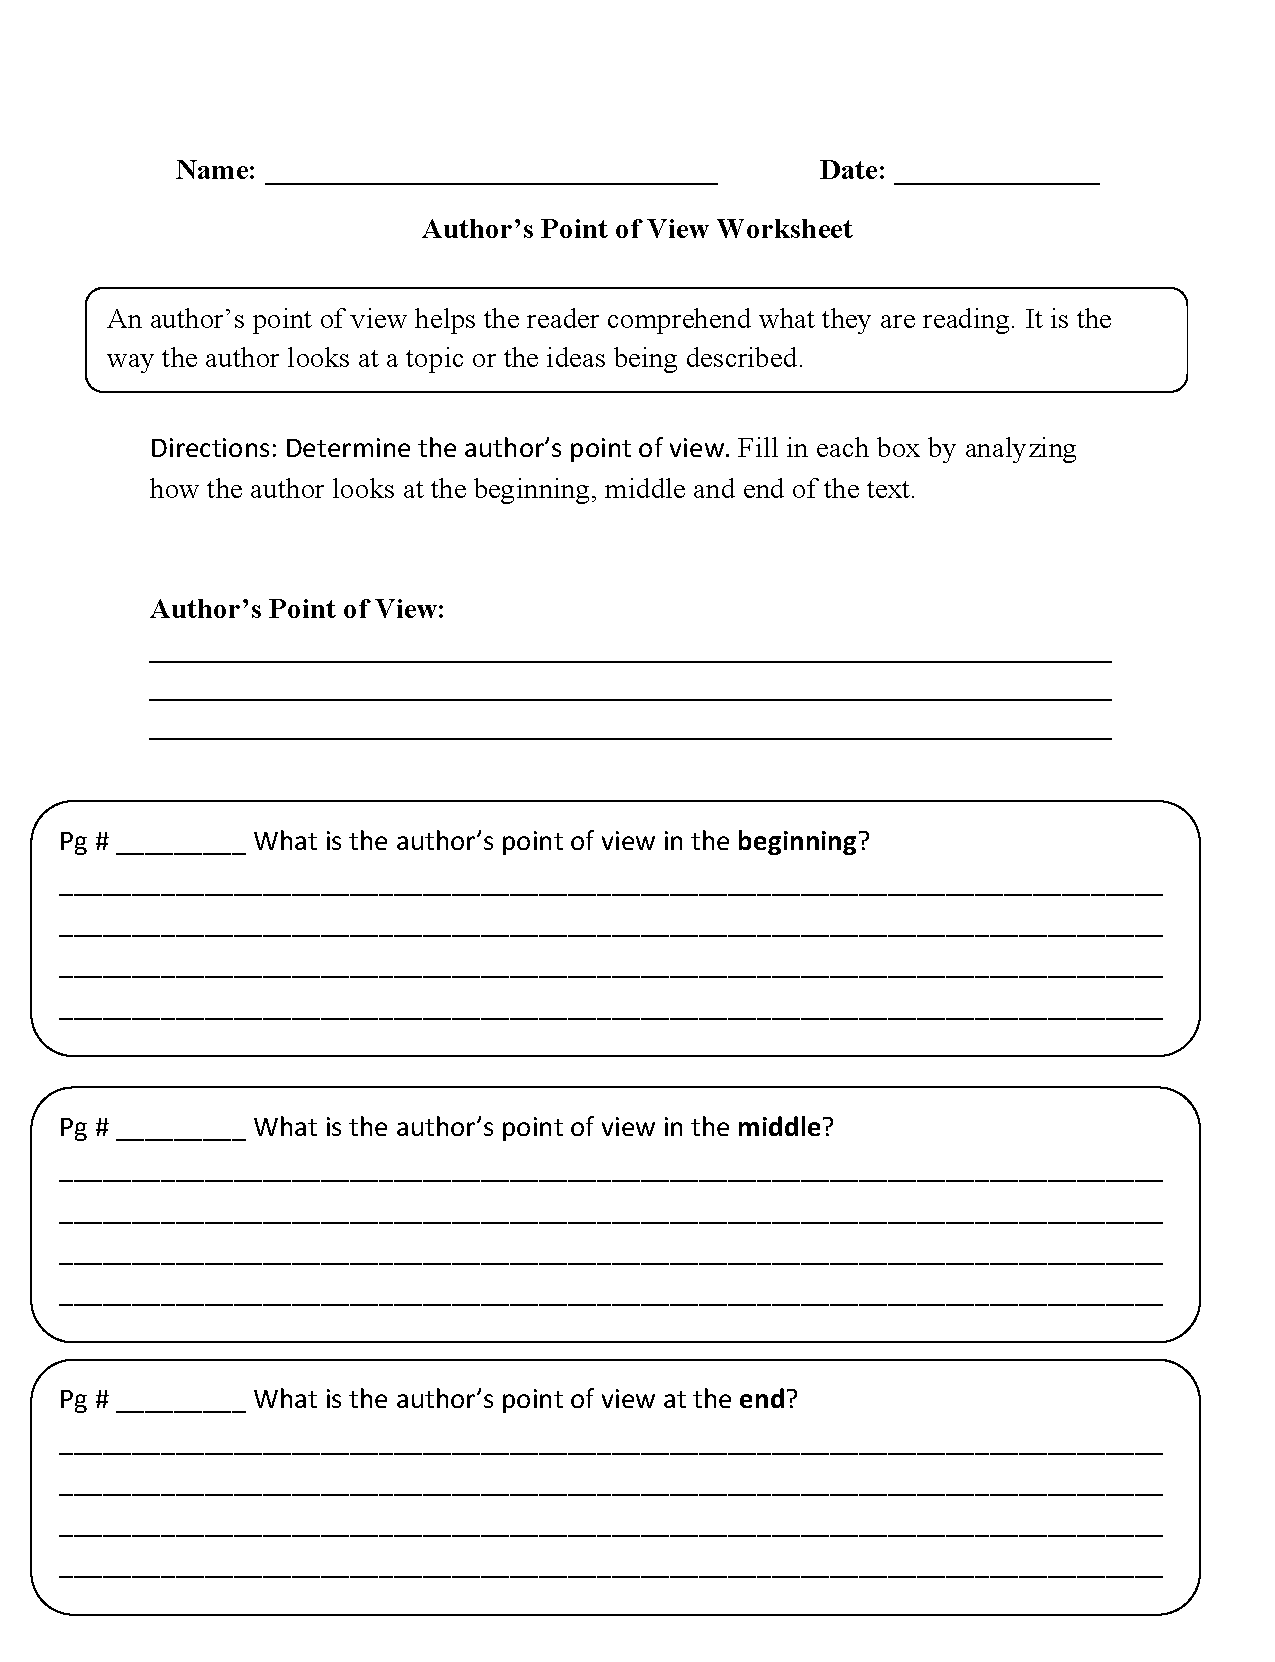 Weirdmailus  Unique Englishlinxcom  Point Of View Worksheets With Gorgeous Point Of View Worksheets With Amusing Antecedents Worksheets Also Capitalization Sentences Worksheets In Addition Addition And Multiplication Properties Worksheet And Landform Map Worksheet As Well As Primary School Mathematics Worksheet Additionally P Worksheets For Kindergarten From Englishlinxcom With Weirdmailus  Gorgeous Englishlinxcom  Point Of View Worksheets With Amusing Point Of View Worksheets And Unique Antecedents Worksheets Also Capitalization Sentences Worksheets In Addition Addition And Multiplication Properties Worksheet From Englishlinxcom